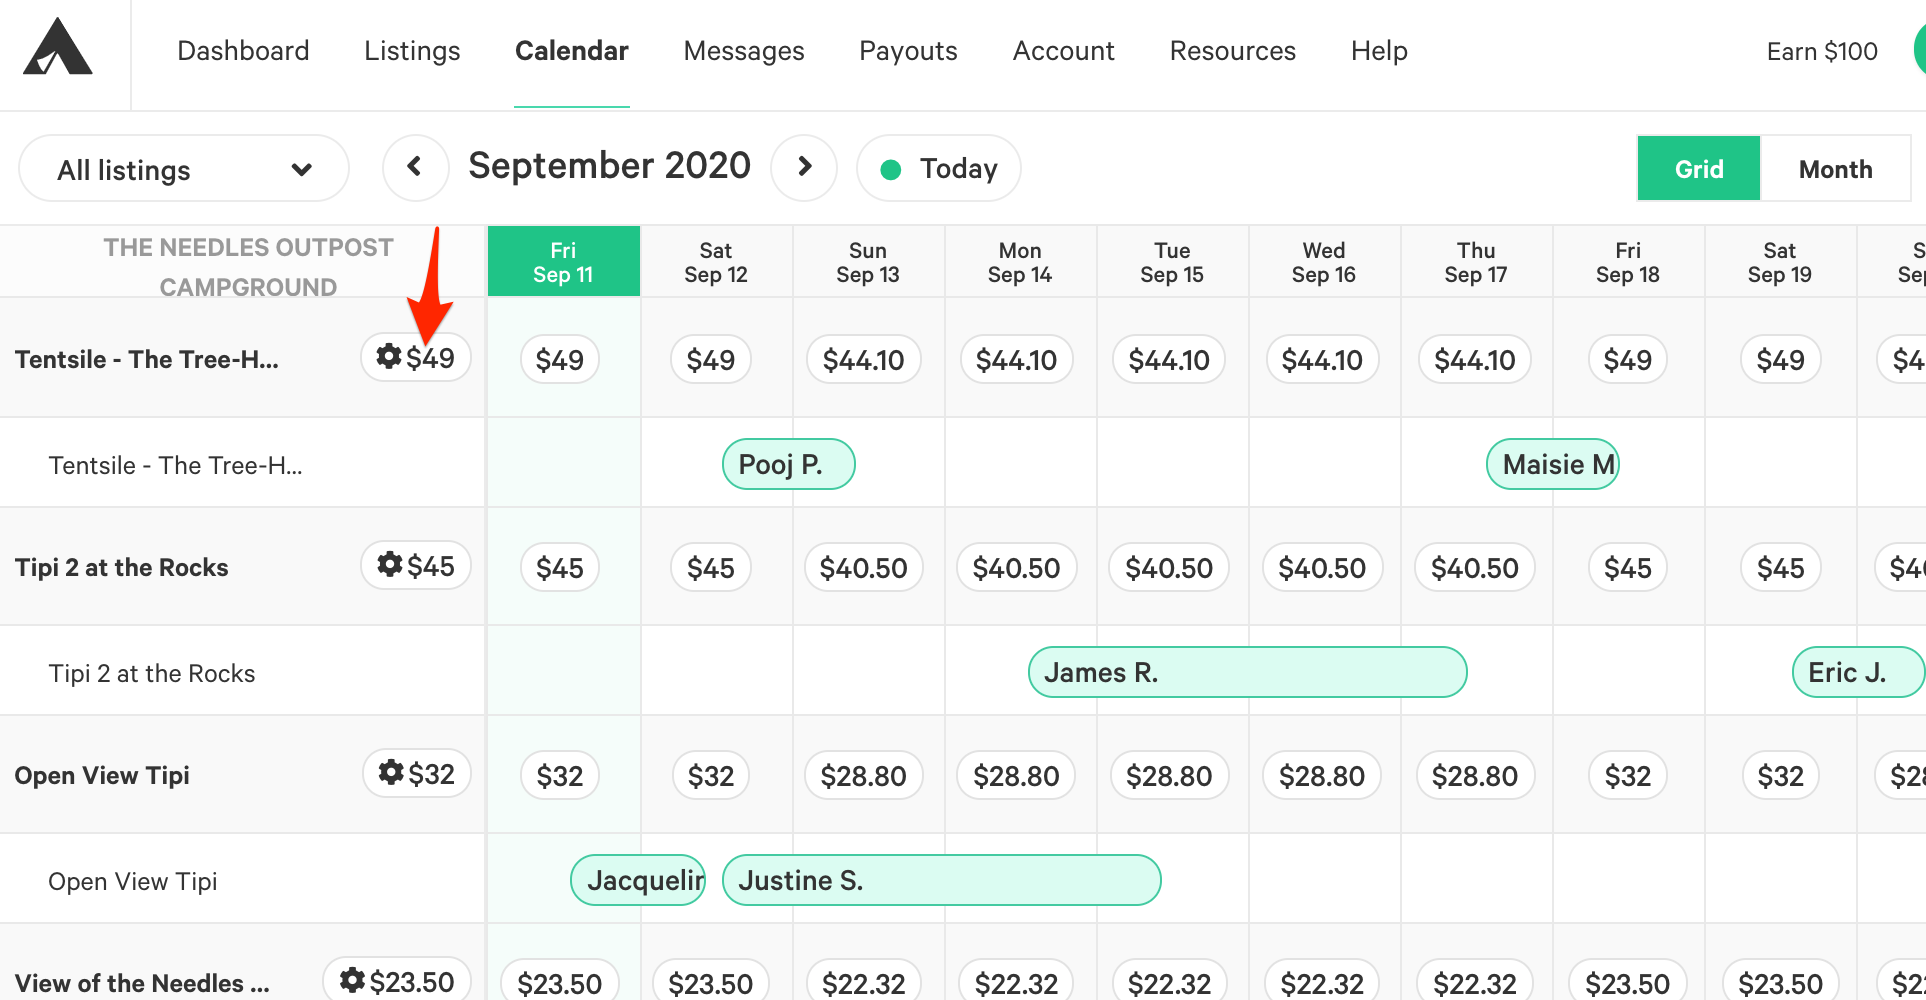 Calendar___Hipcamp_Dashboard.png